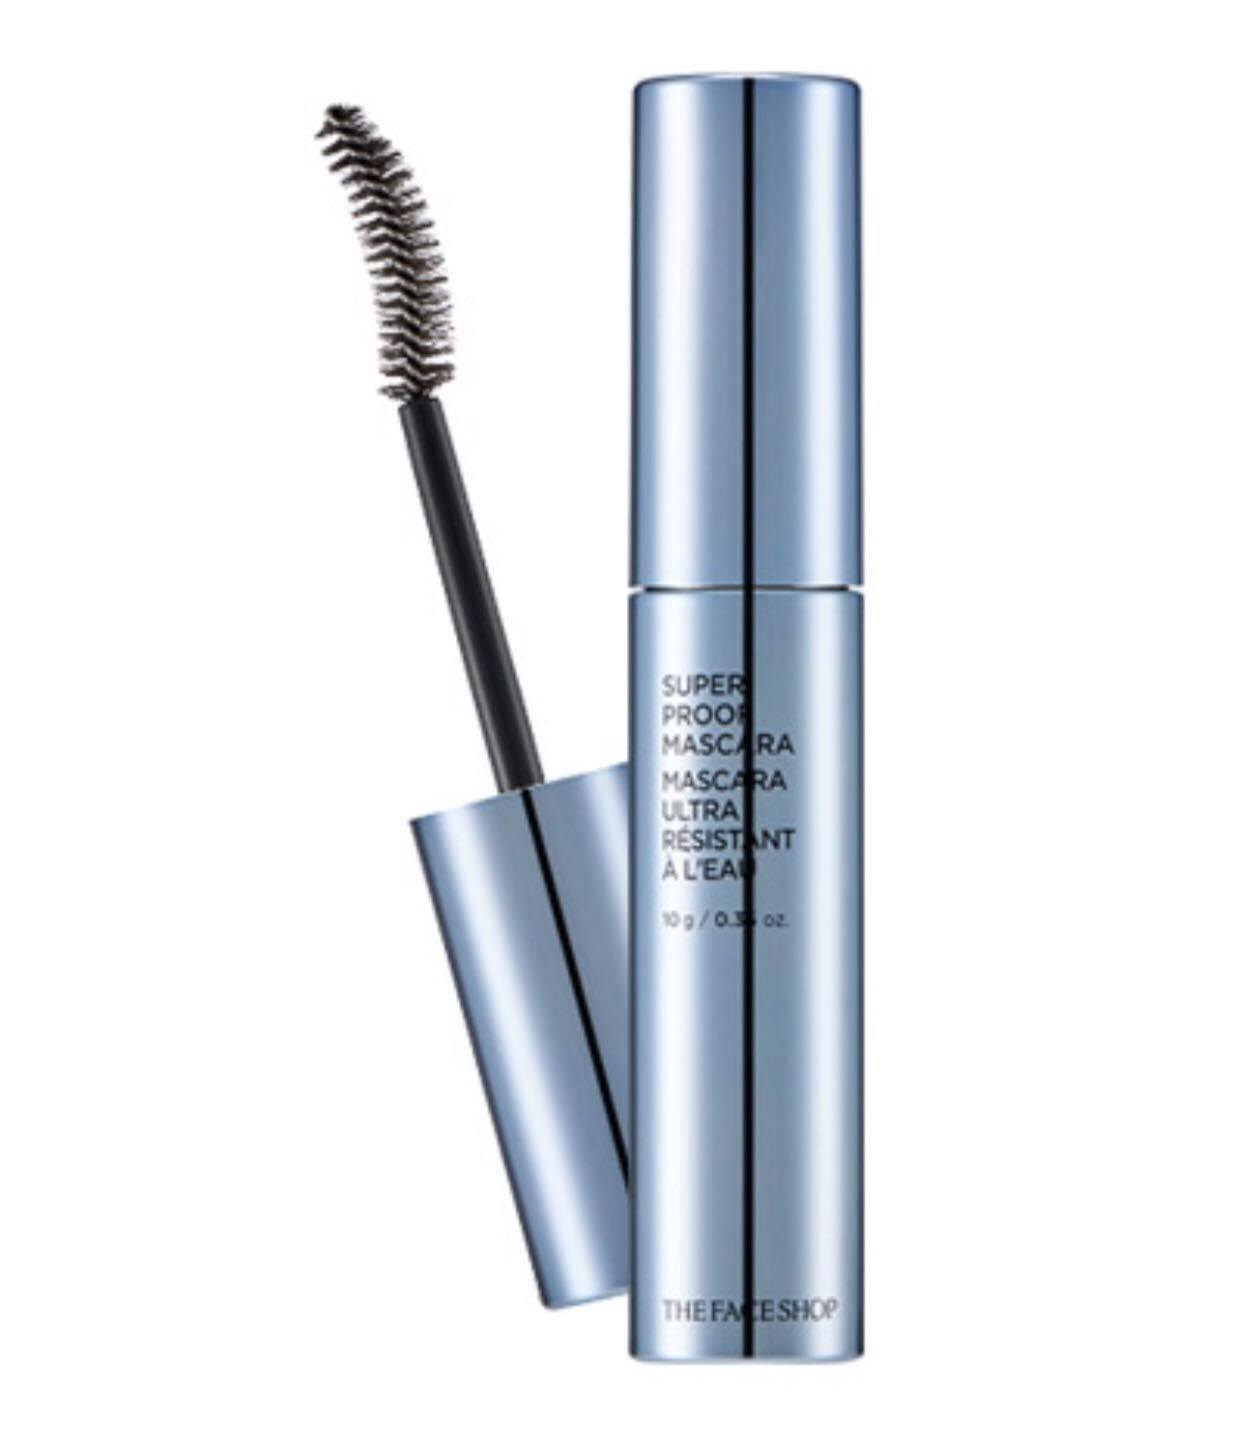 Super Proof Mascara